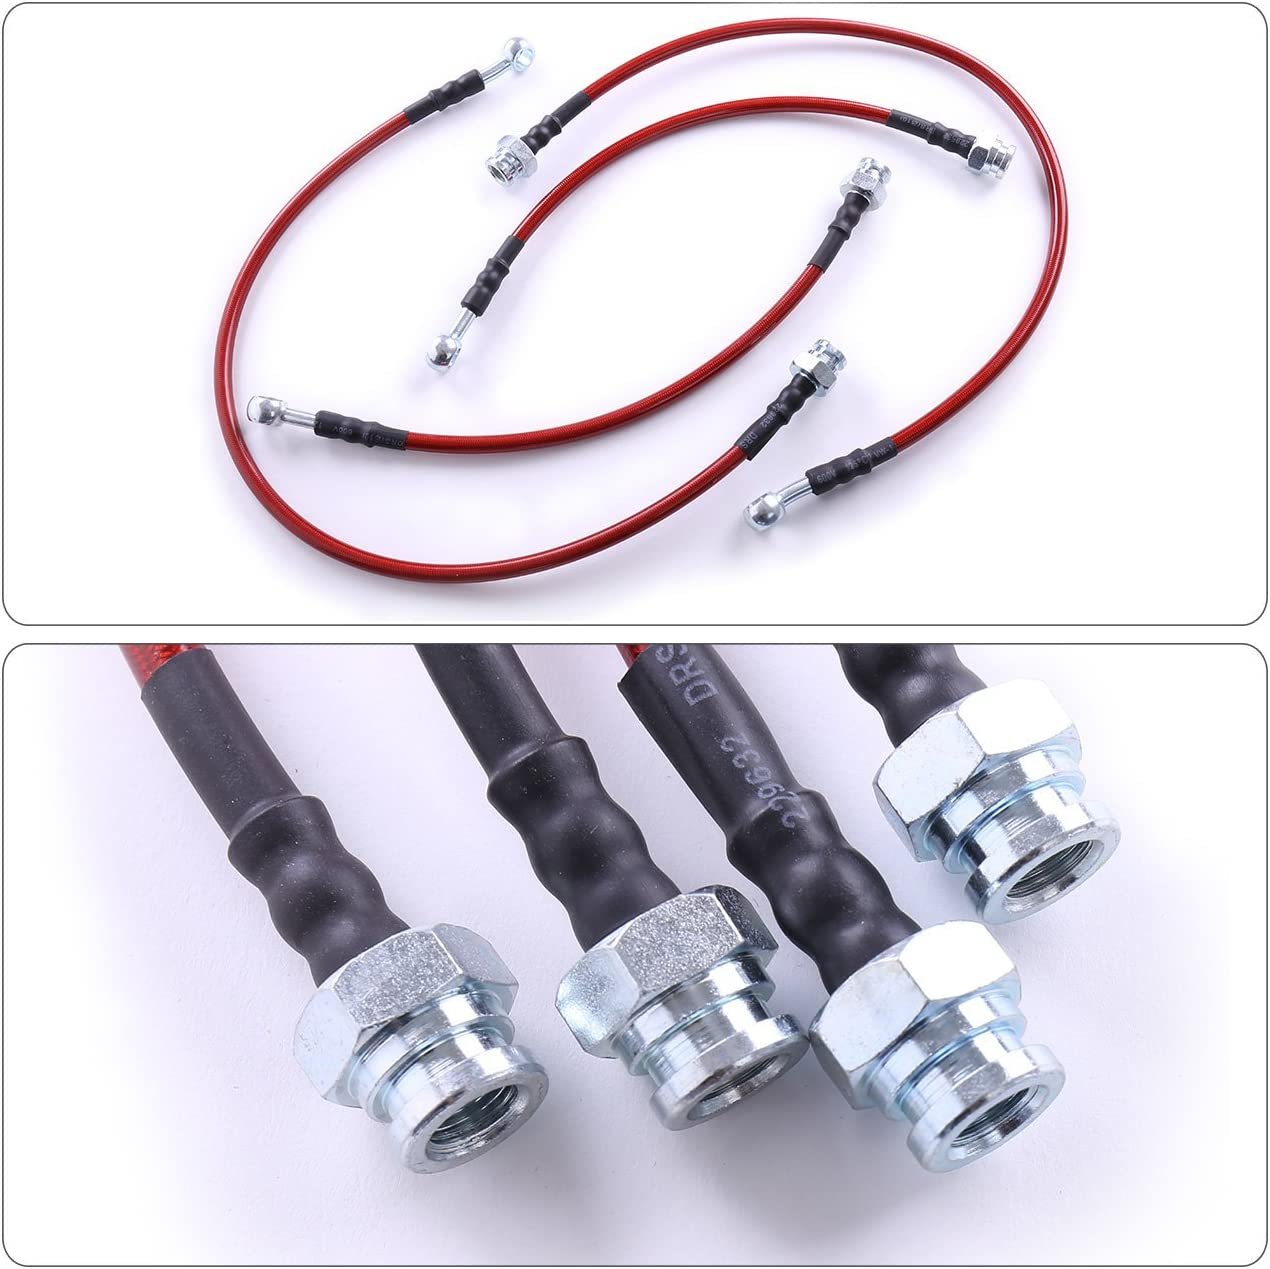 For Nissan 240SX S13 180SX 200SX Front Rear Red Stainless Steel Braided Oil Brake Line Cable Hose Black End Cap